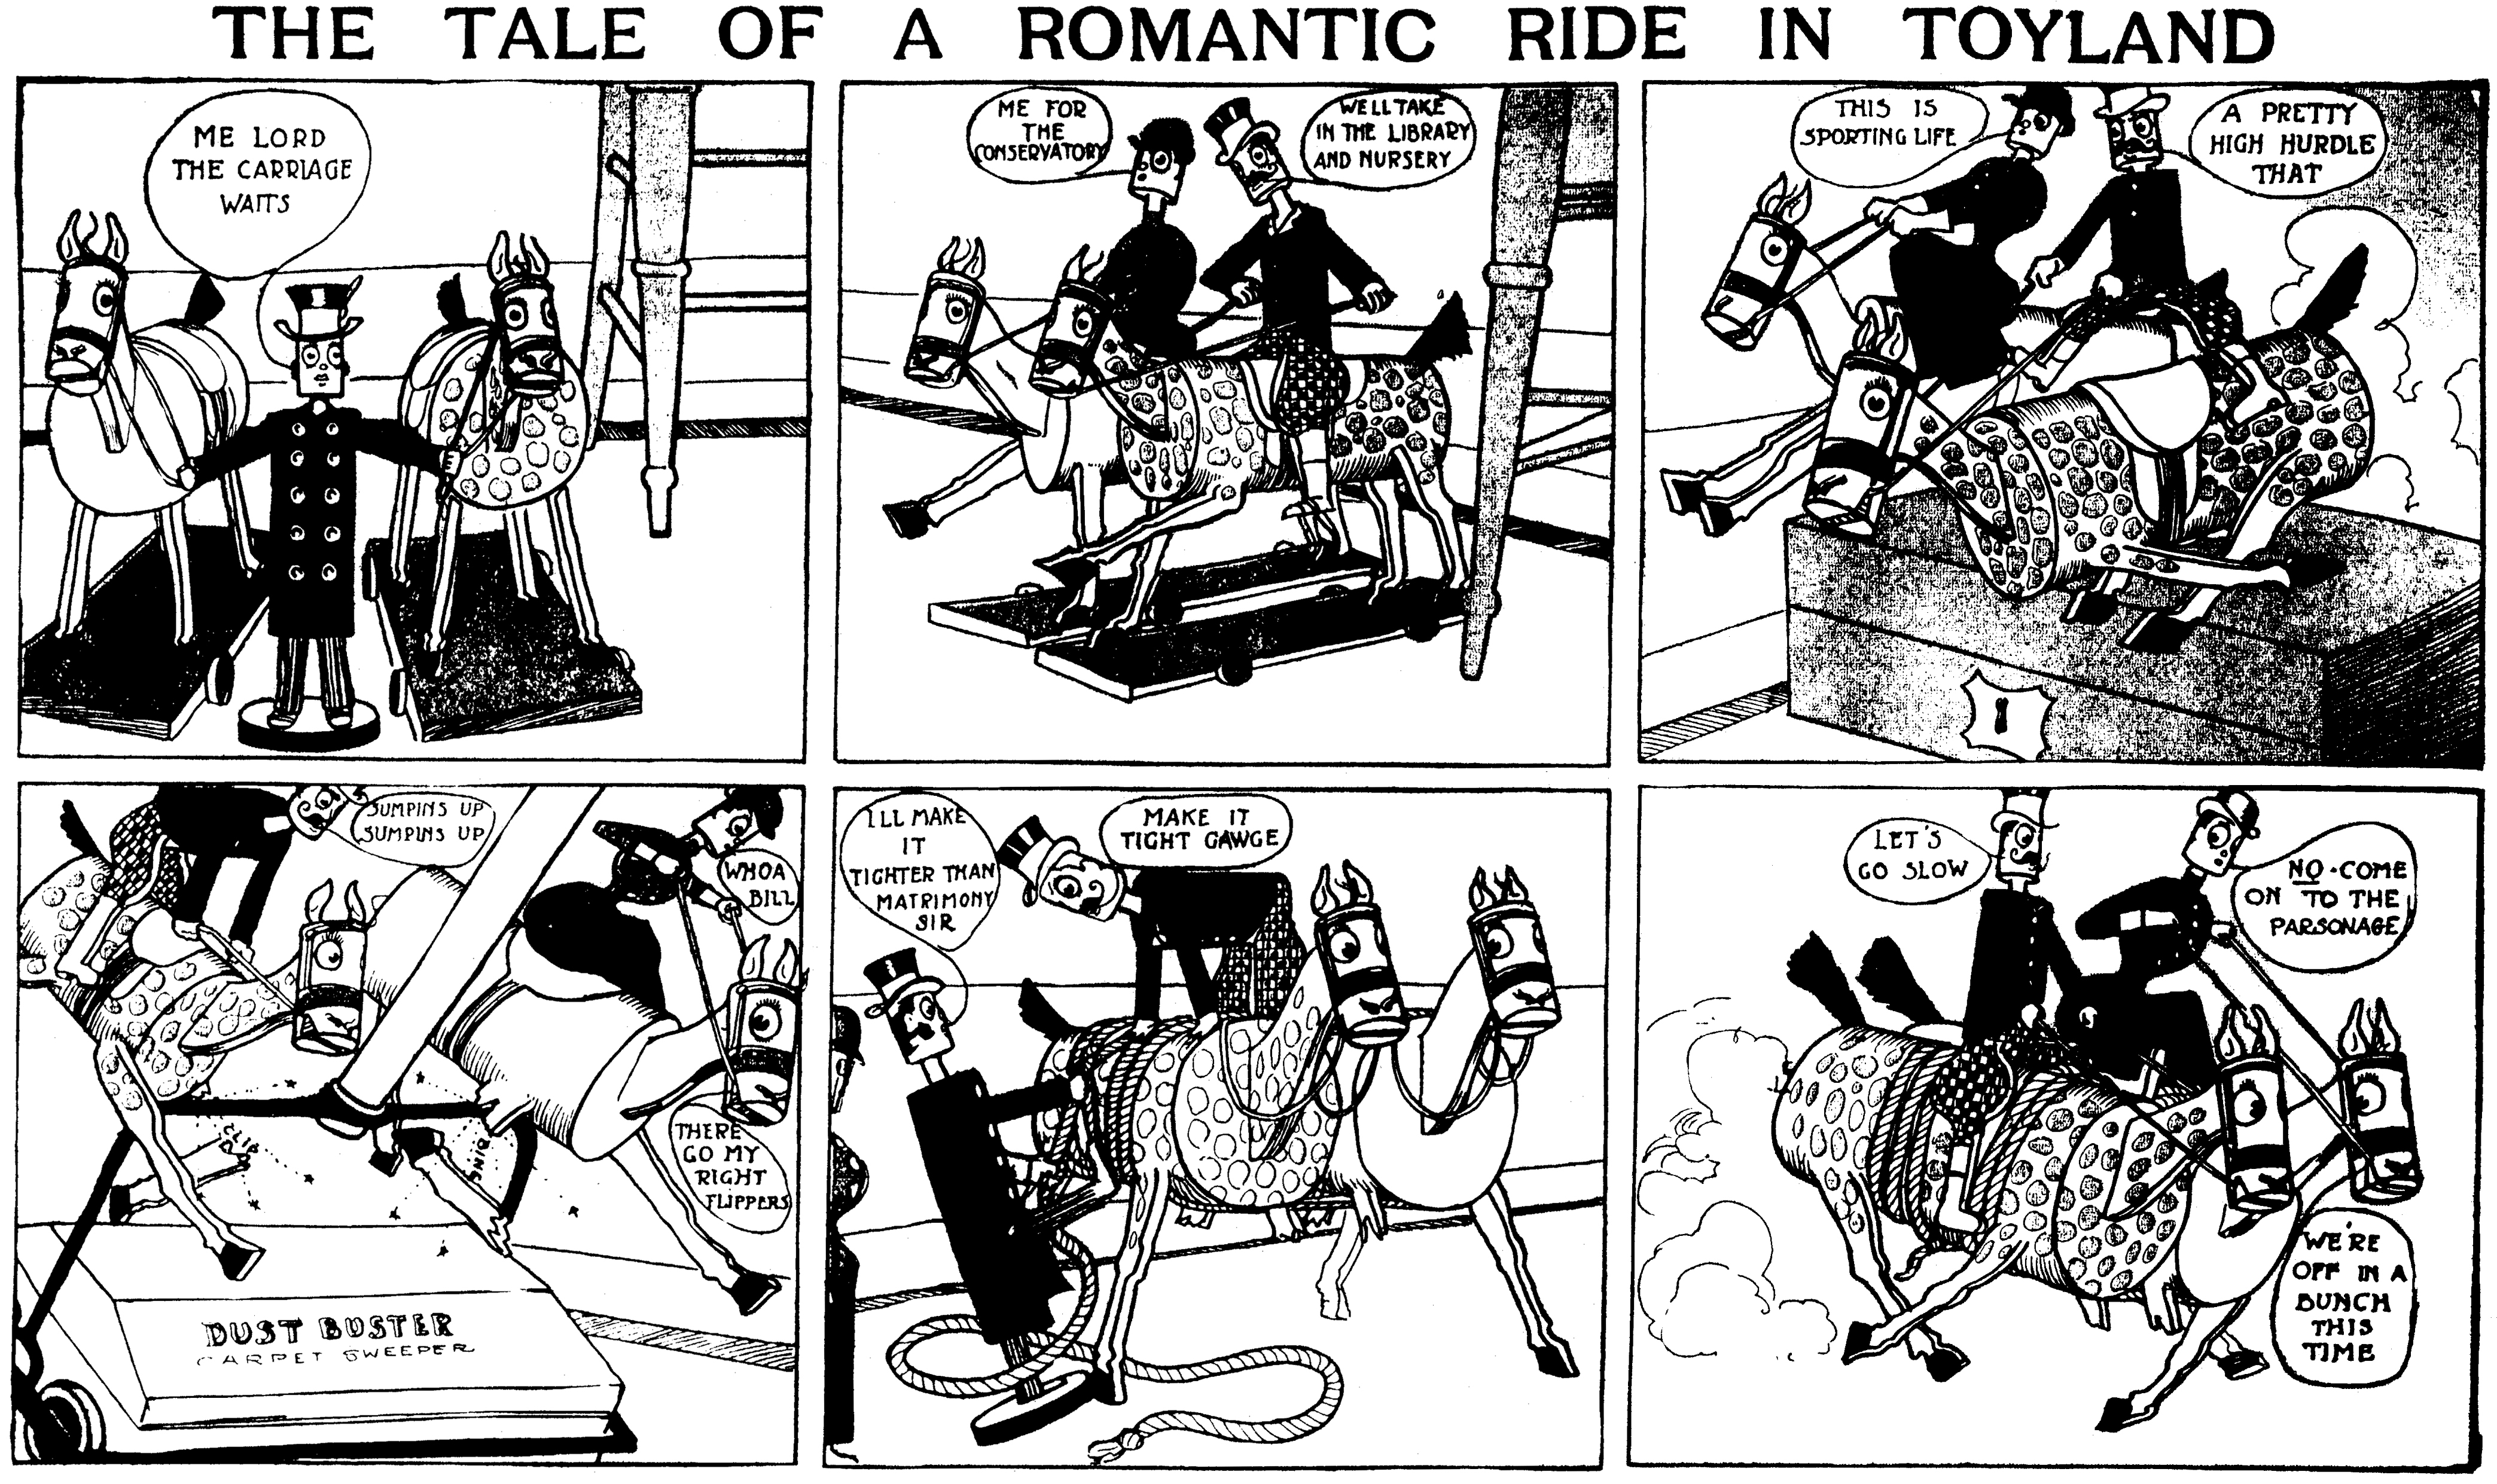 The Tale of a Romantic Ride in Toyland